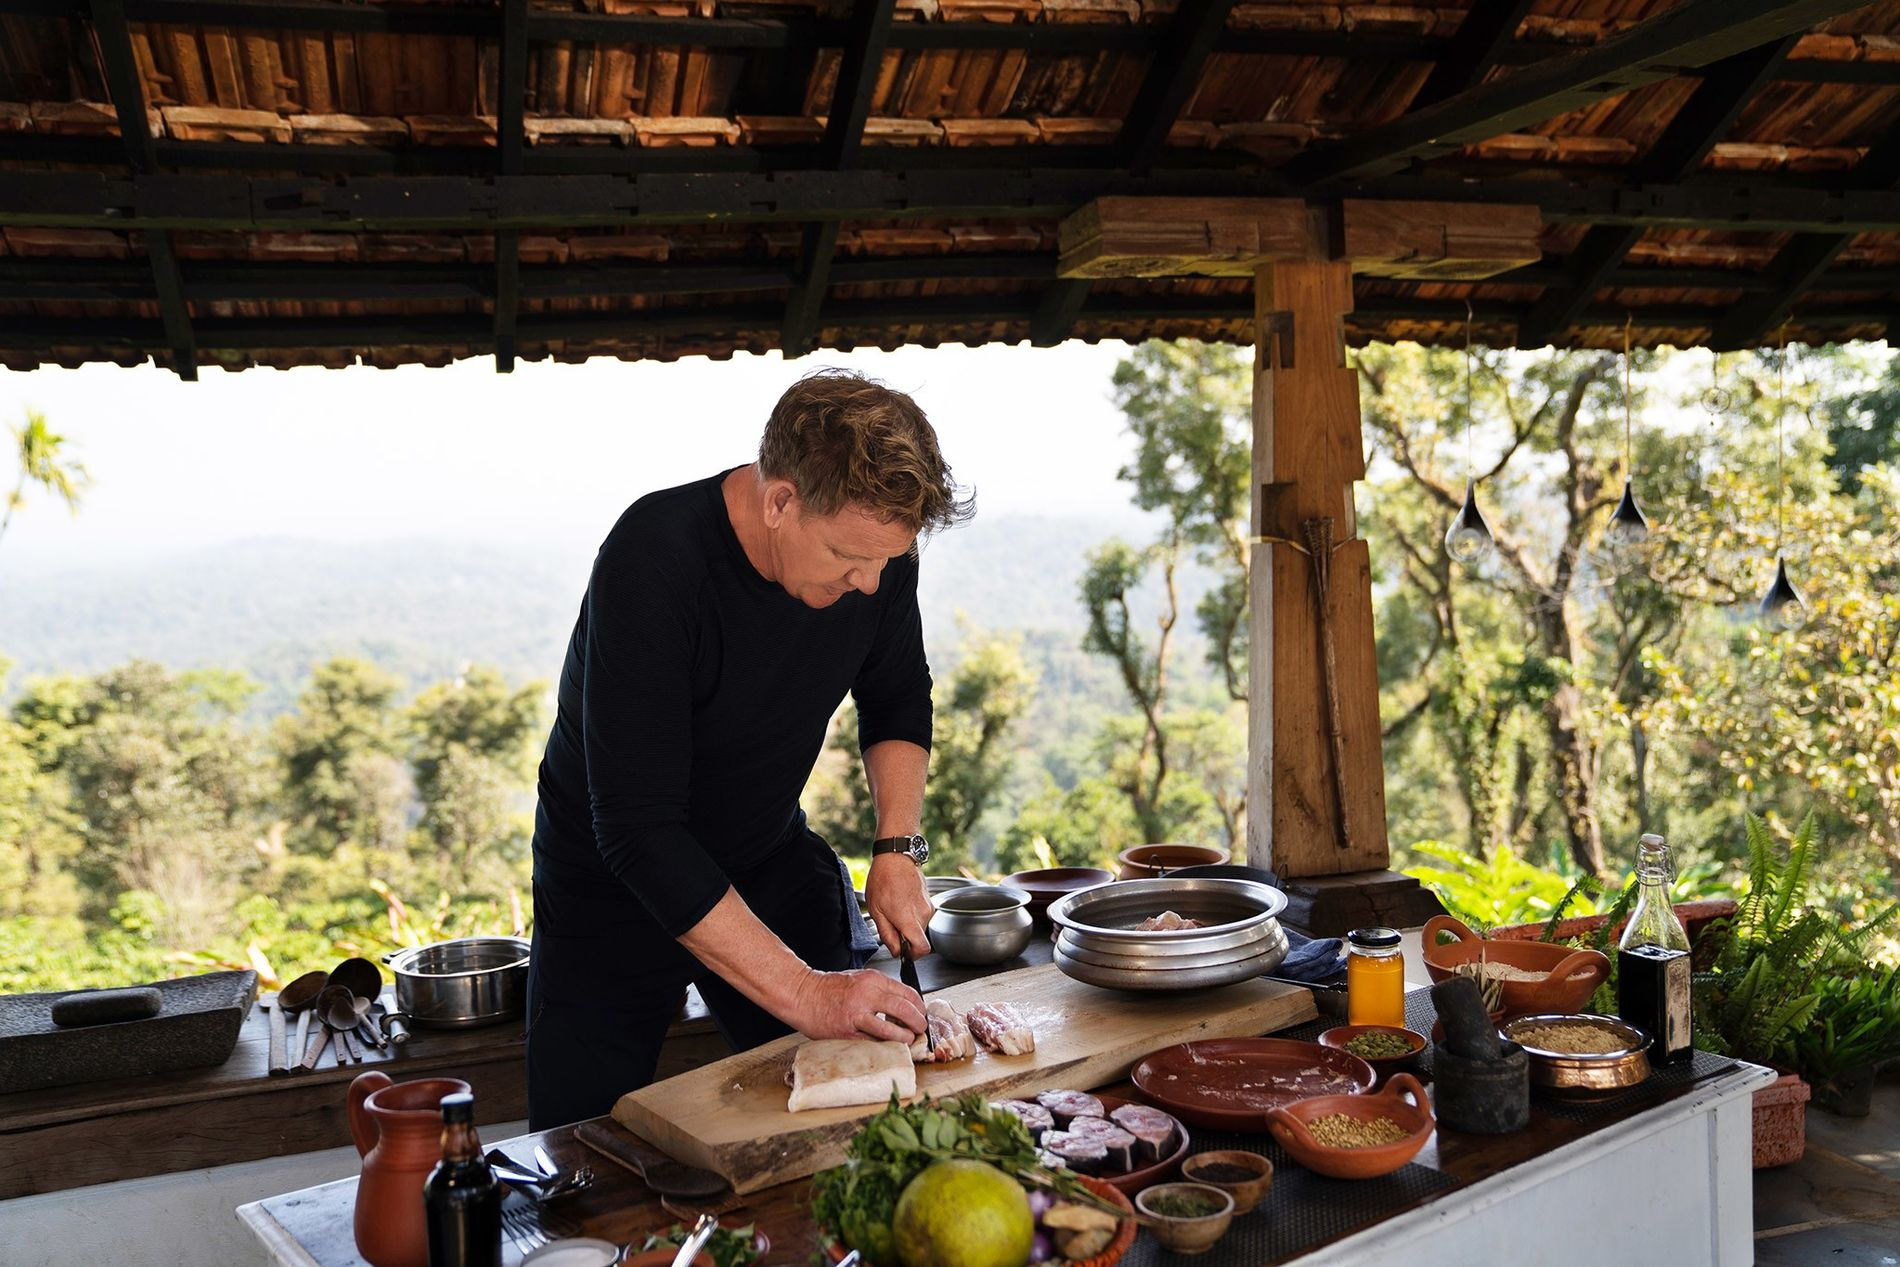 How To Cook A Piranha Gordon Ramsay On Skills He Learned Making Travel Tv National Geographic